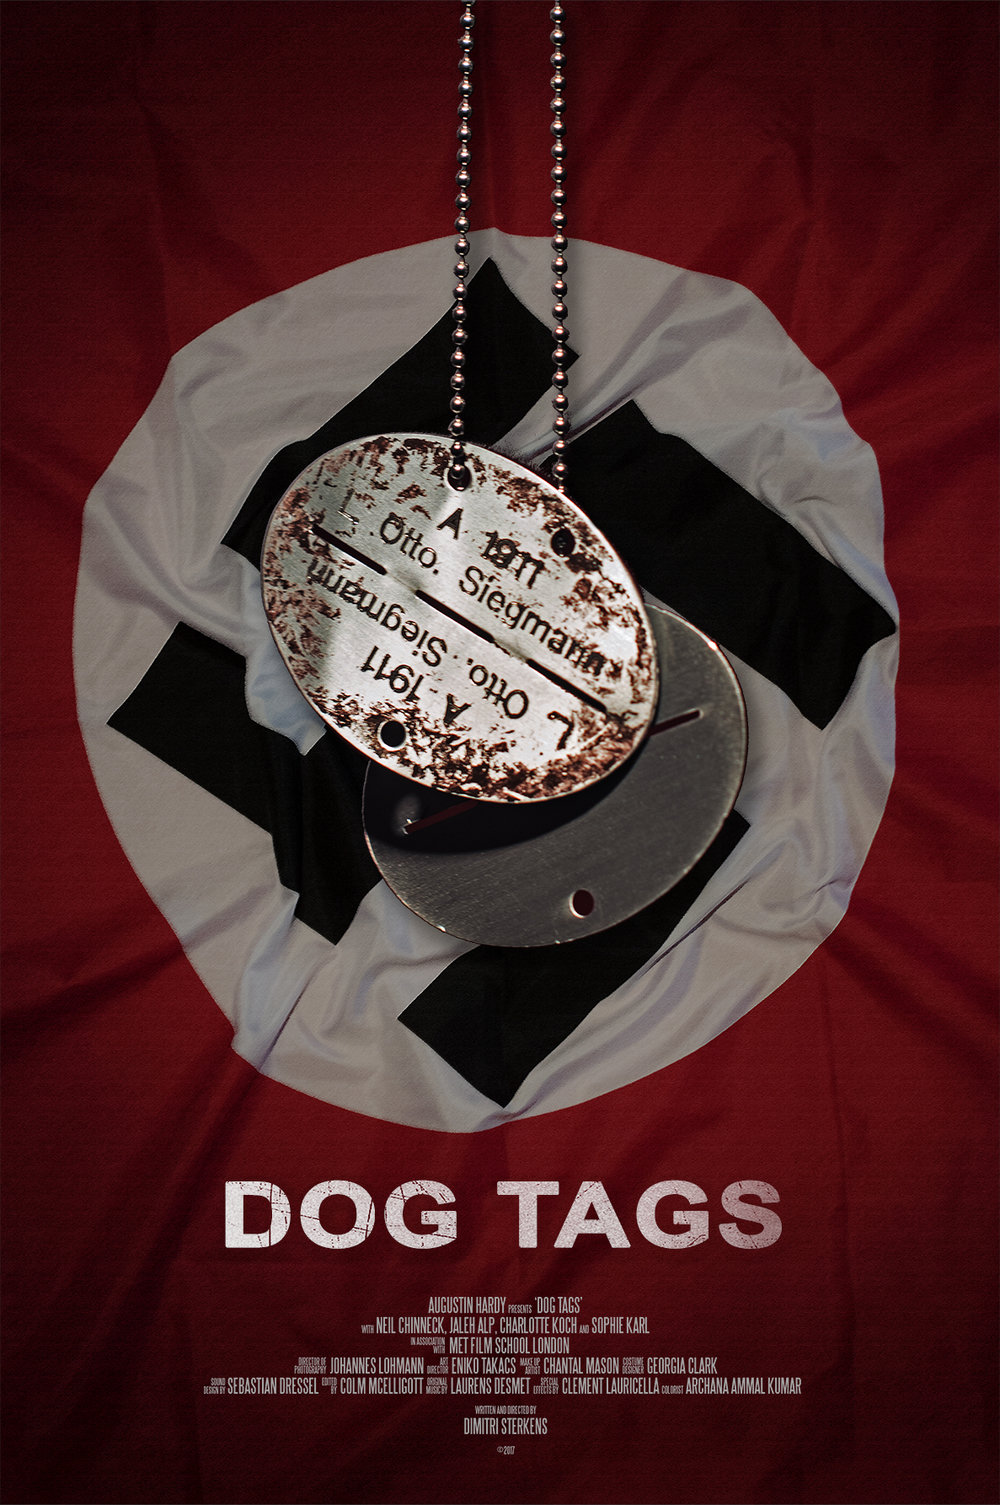 Dog Tags, an original fiction idea for a new TV series - Created by Augustin HardyDiscover more at www.dogtagsfilm.com